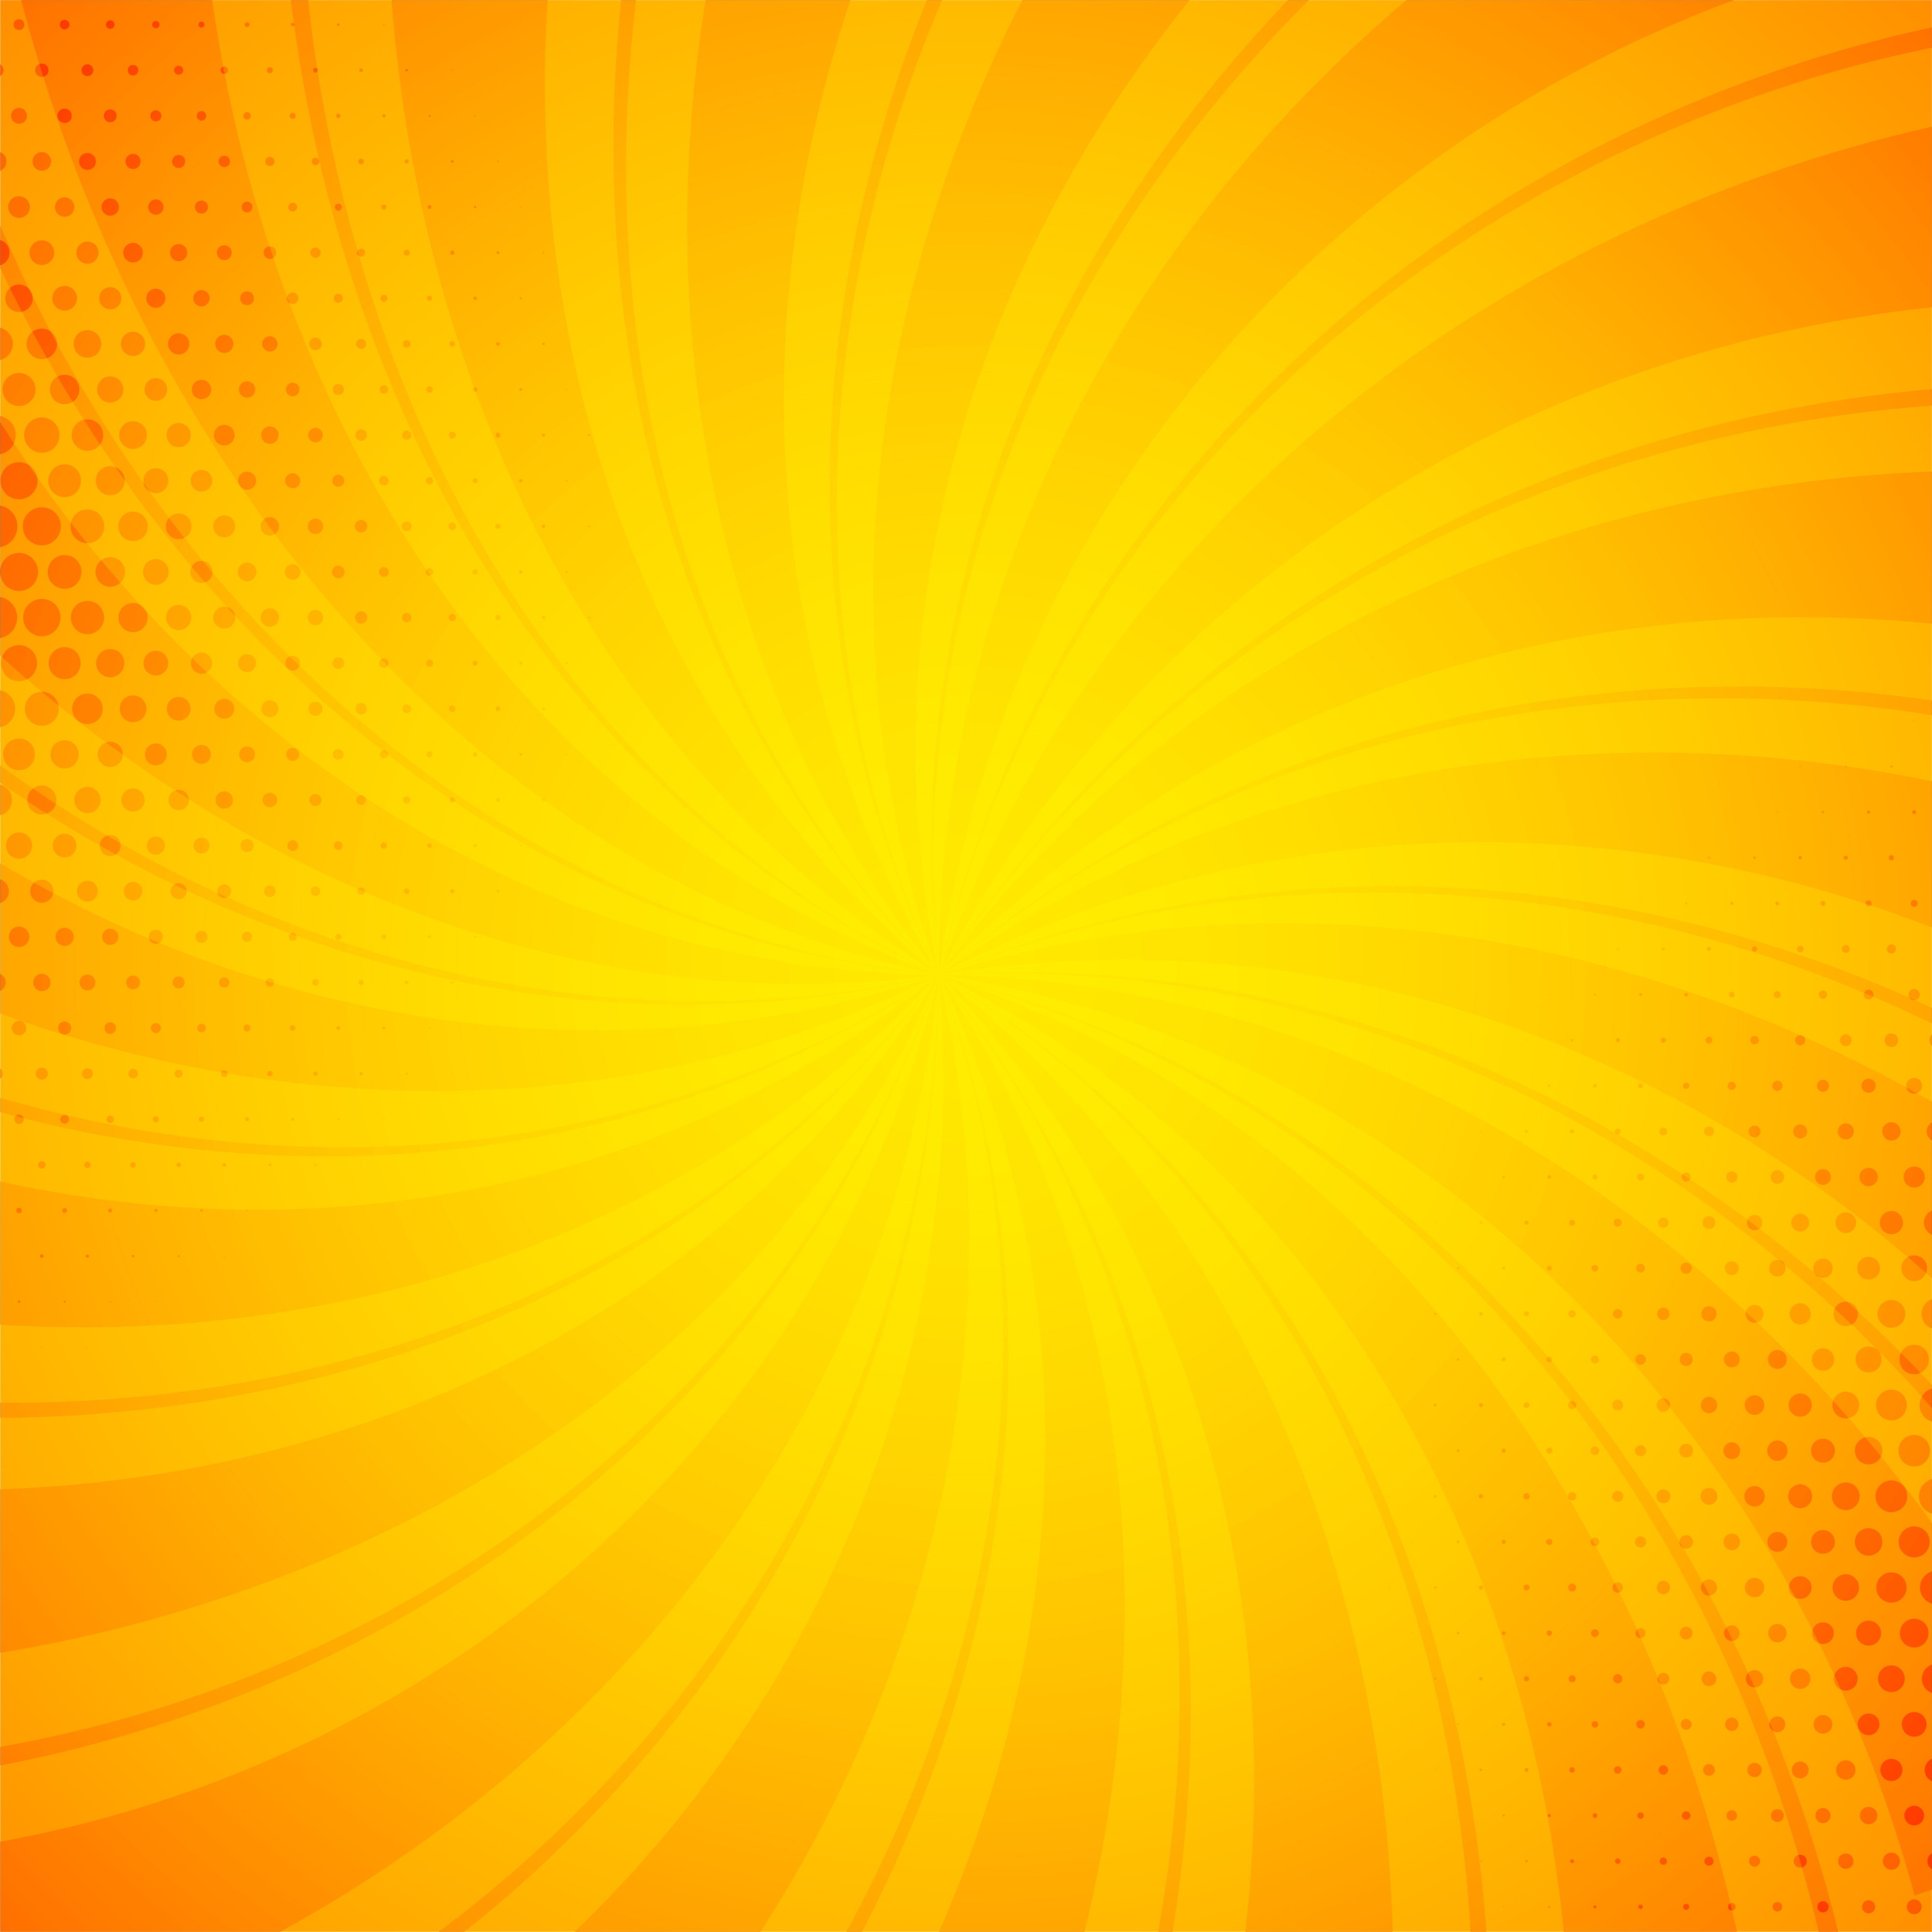 bright orange comic book background download vector #1036